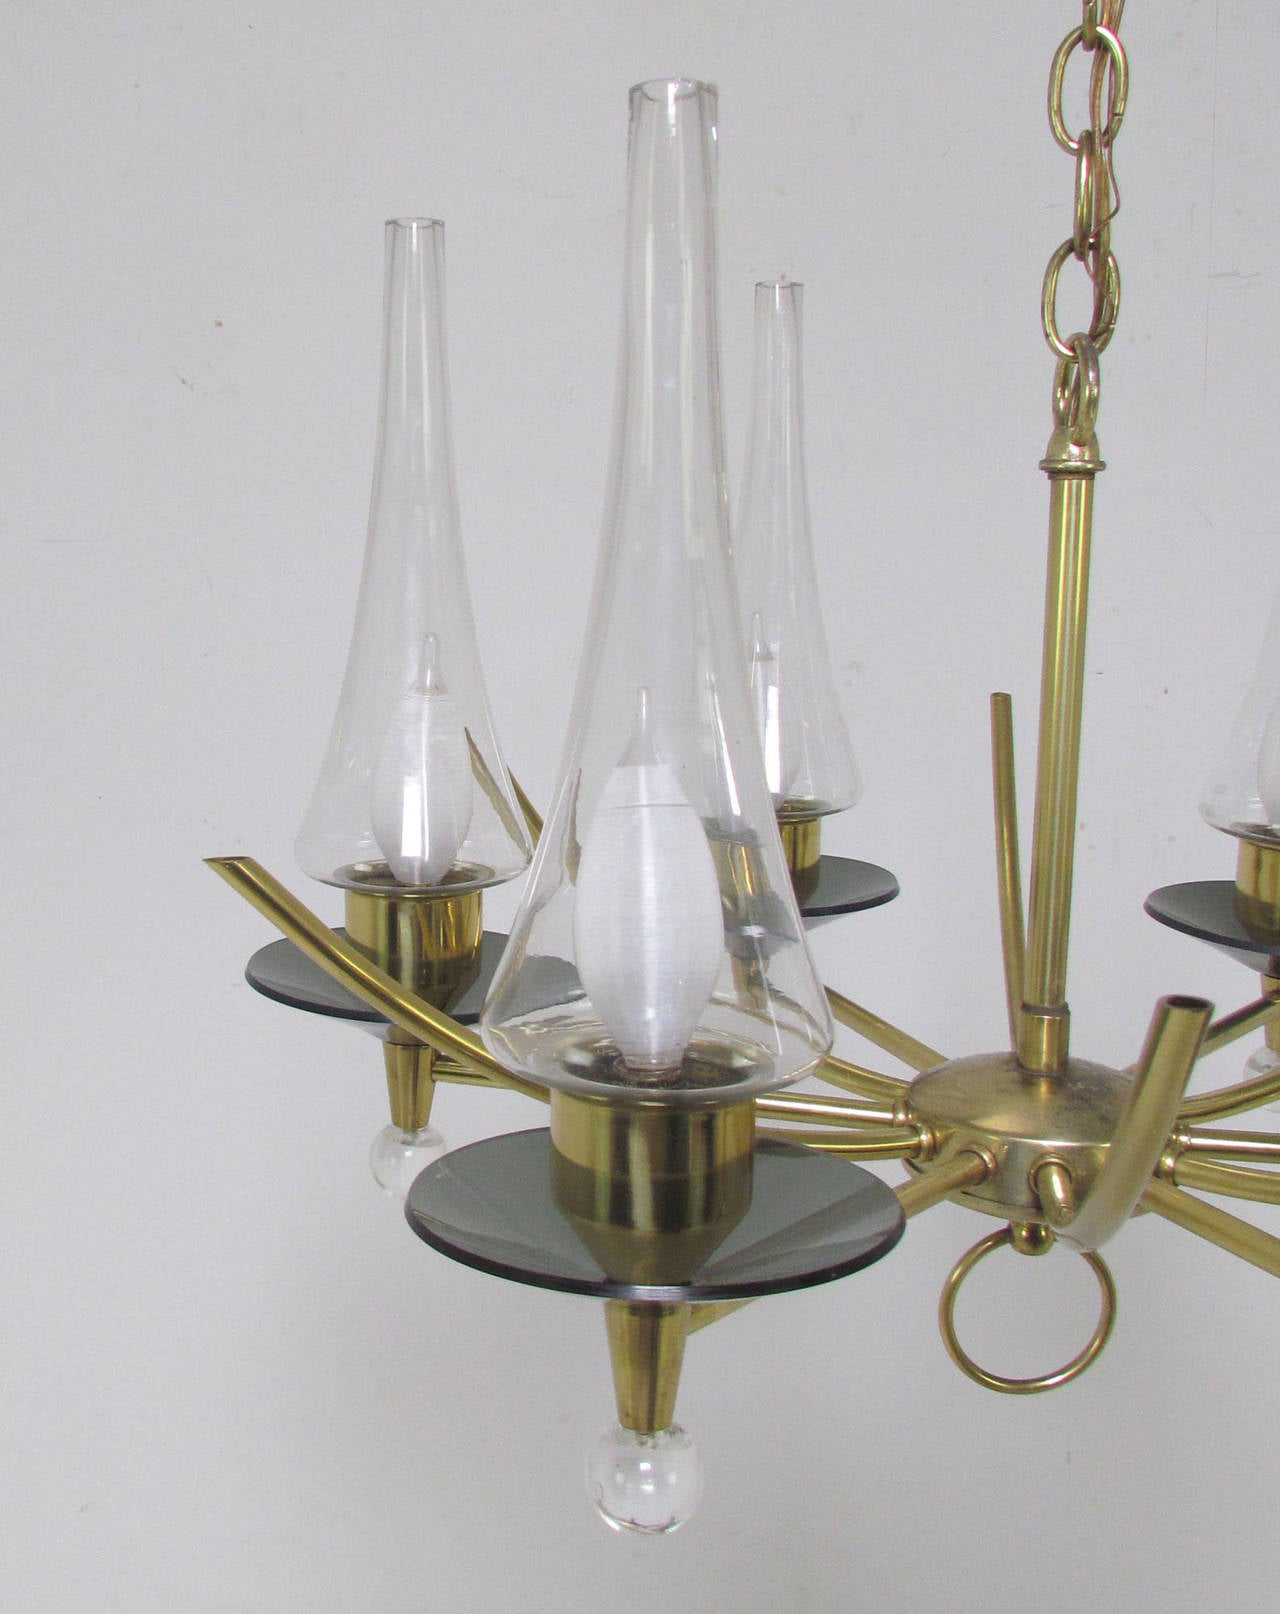 American Mid-Century Six-Arm Chandelier in Brass and Glass by Feldman Lighting Co For Sale